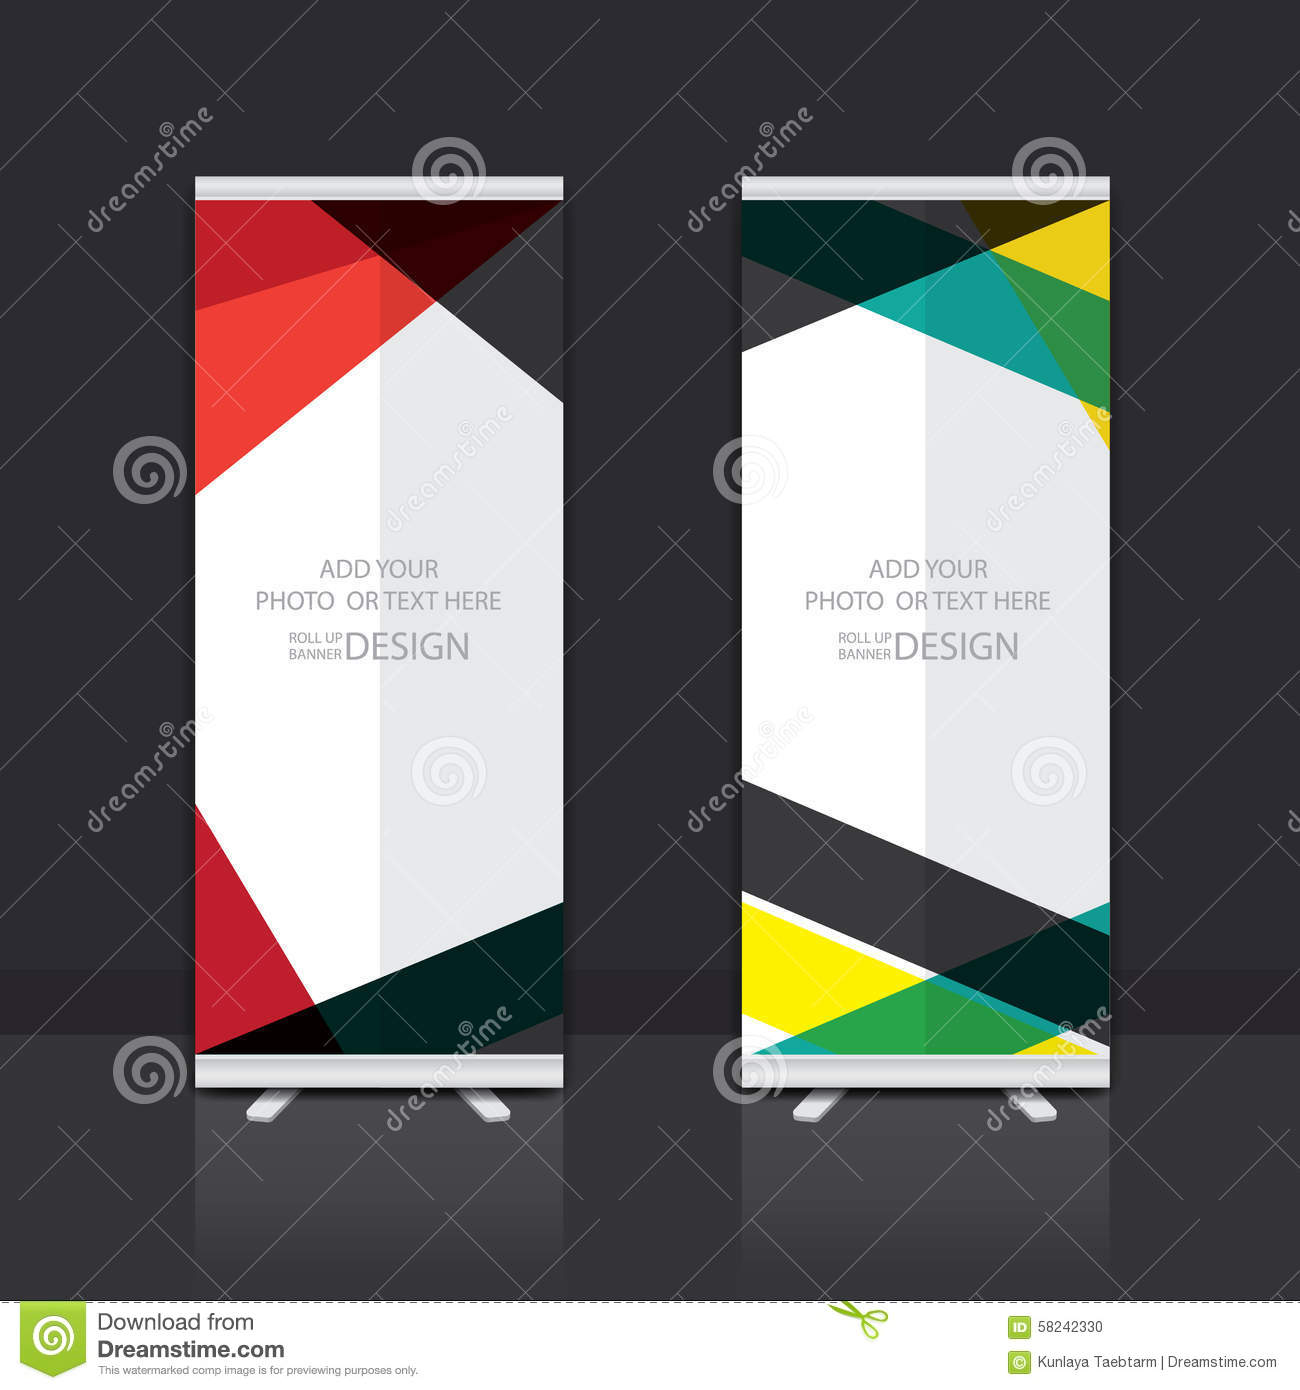 Stand Up Banner Designs : Roll up banner design stock vector image